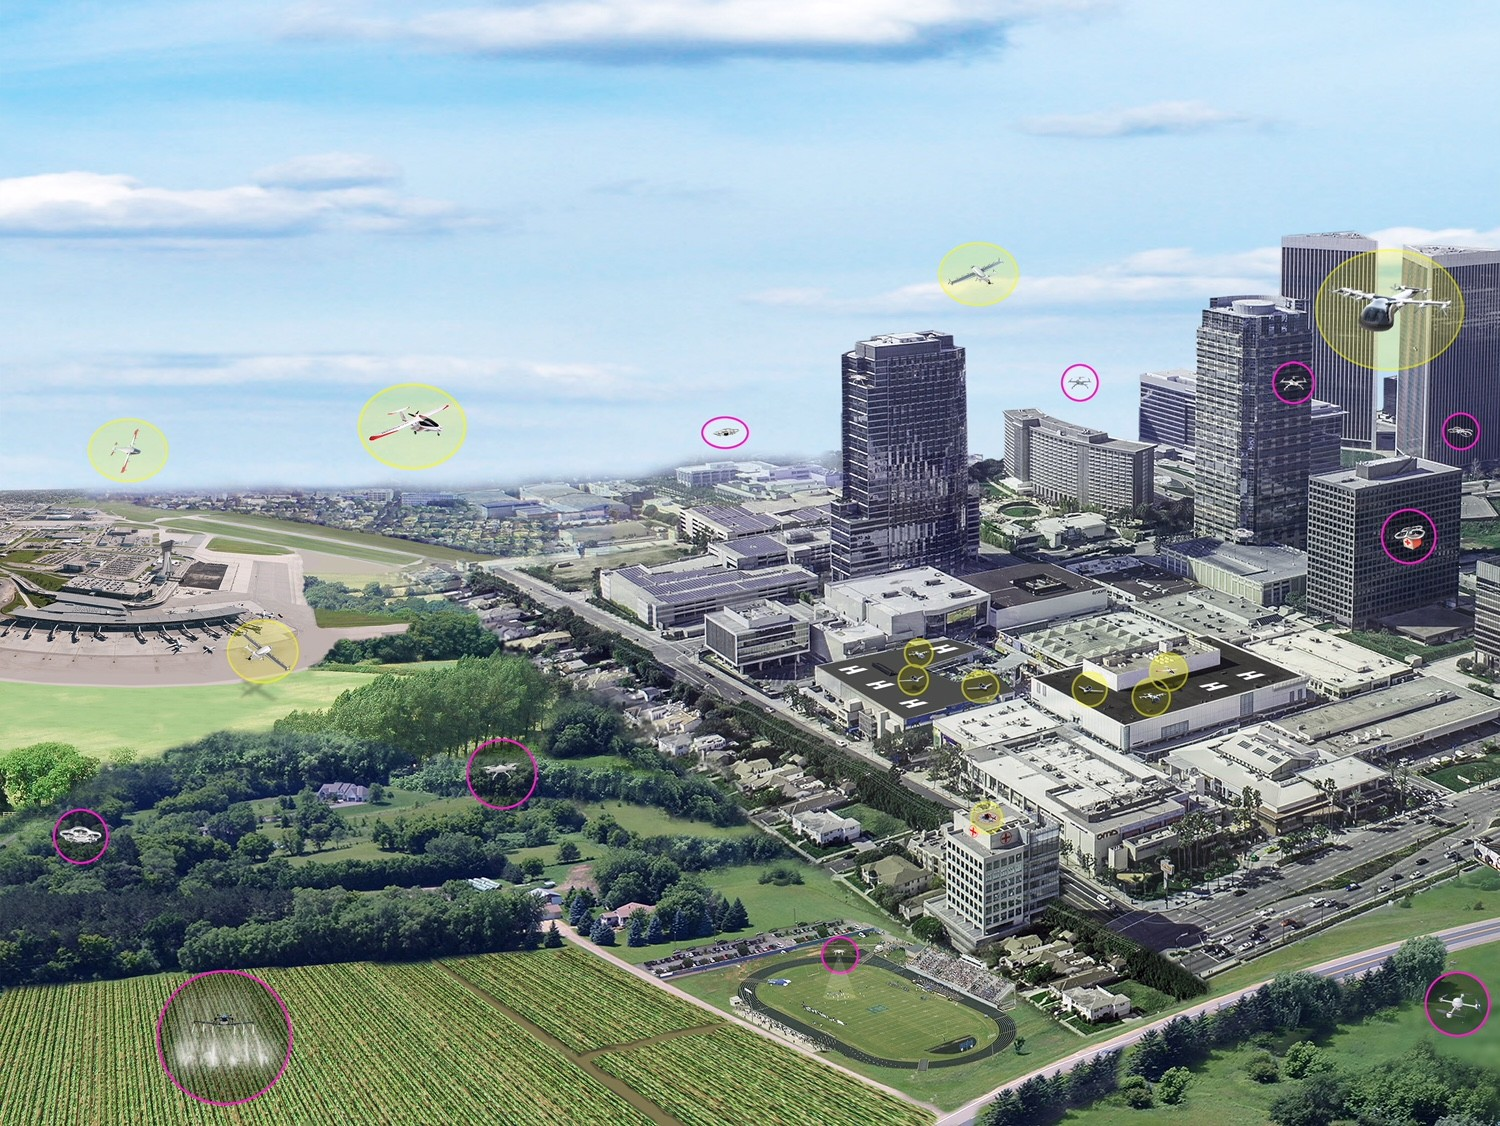 The concept of urban air mobility involves multiple aircraft safely operating within a city. (Yellow circles are vehicles with passengers; pink circles are vehicles without passengers.)